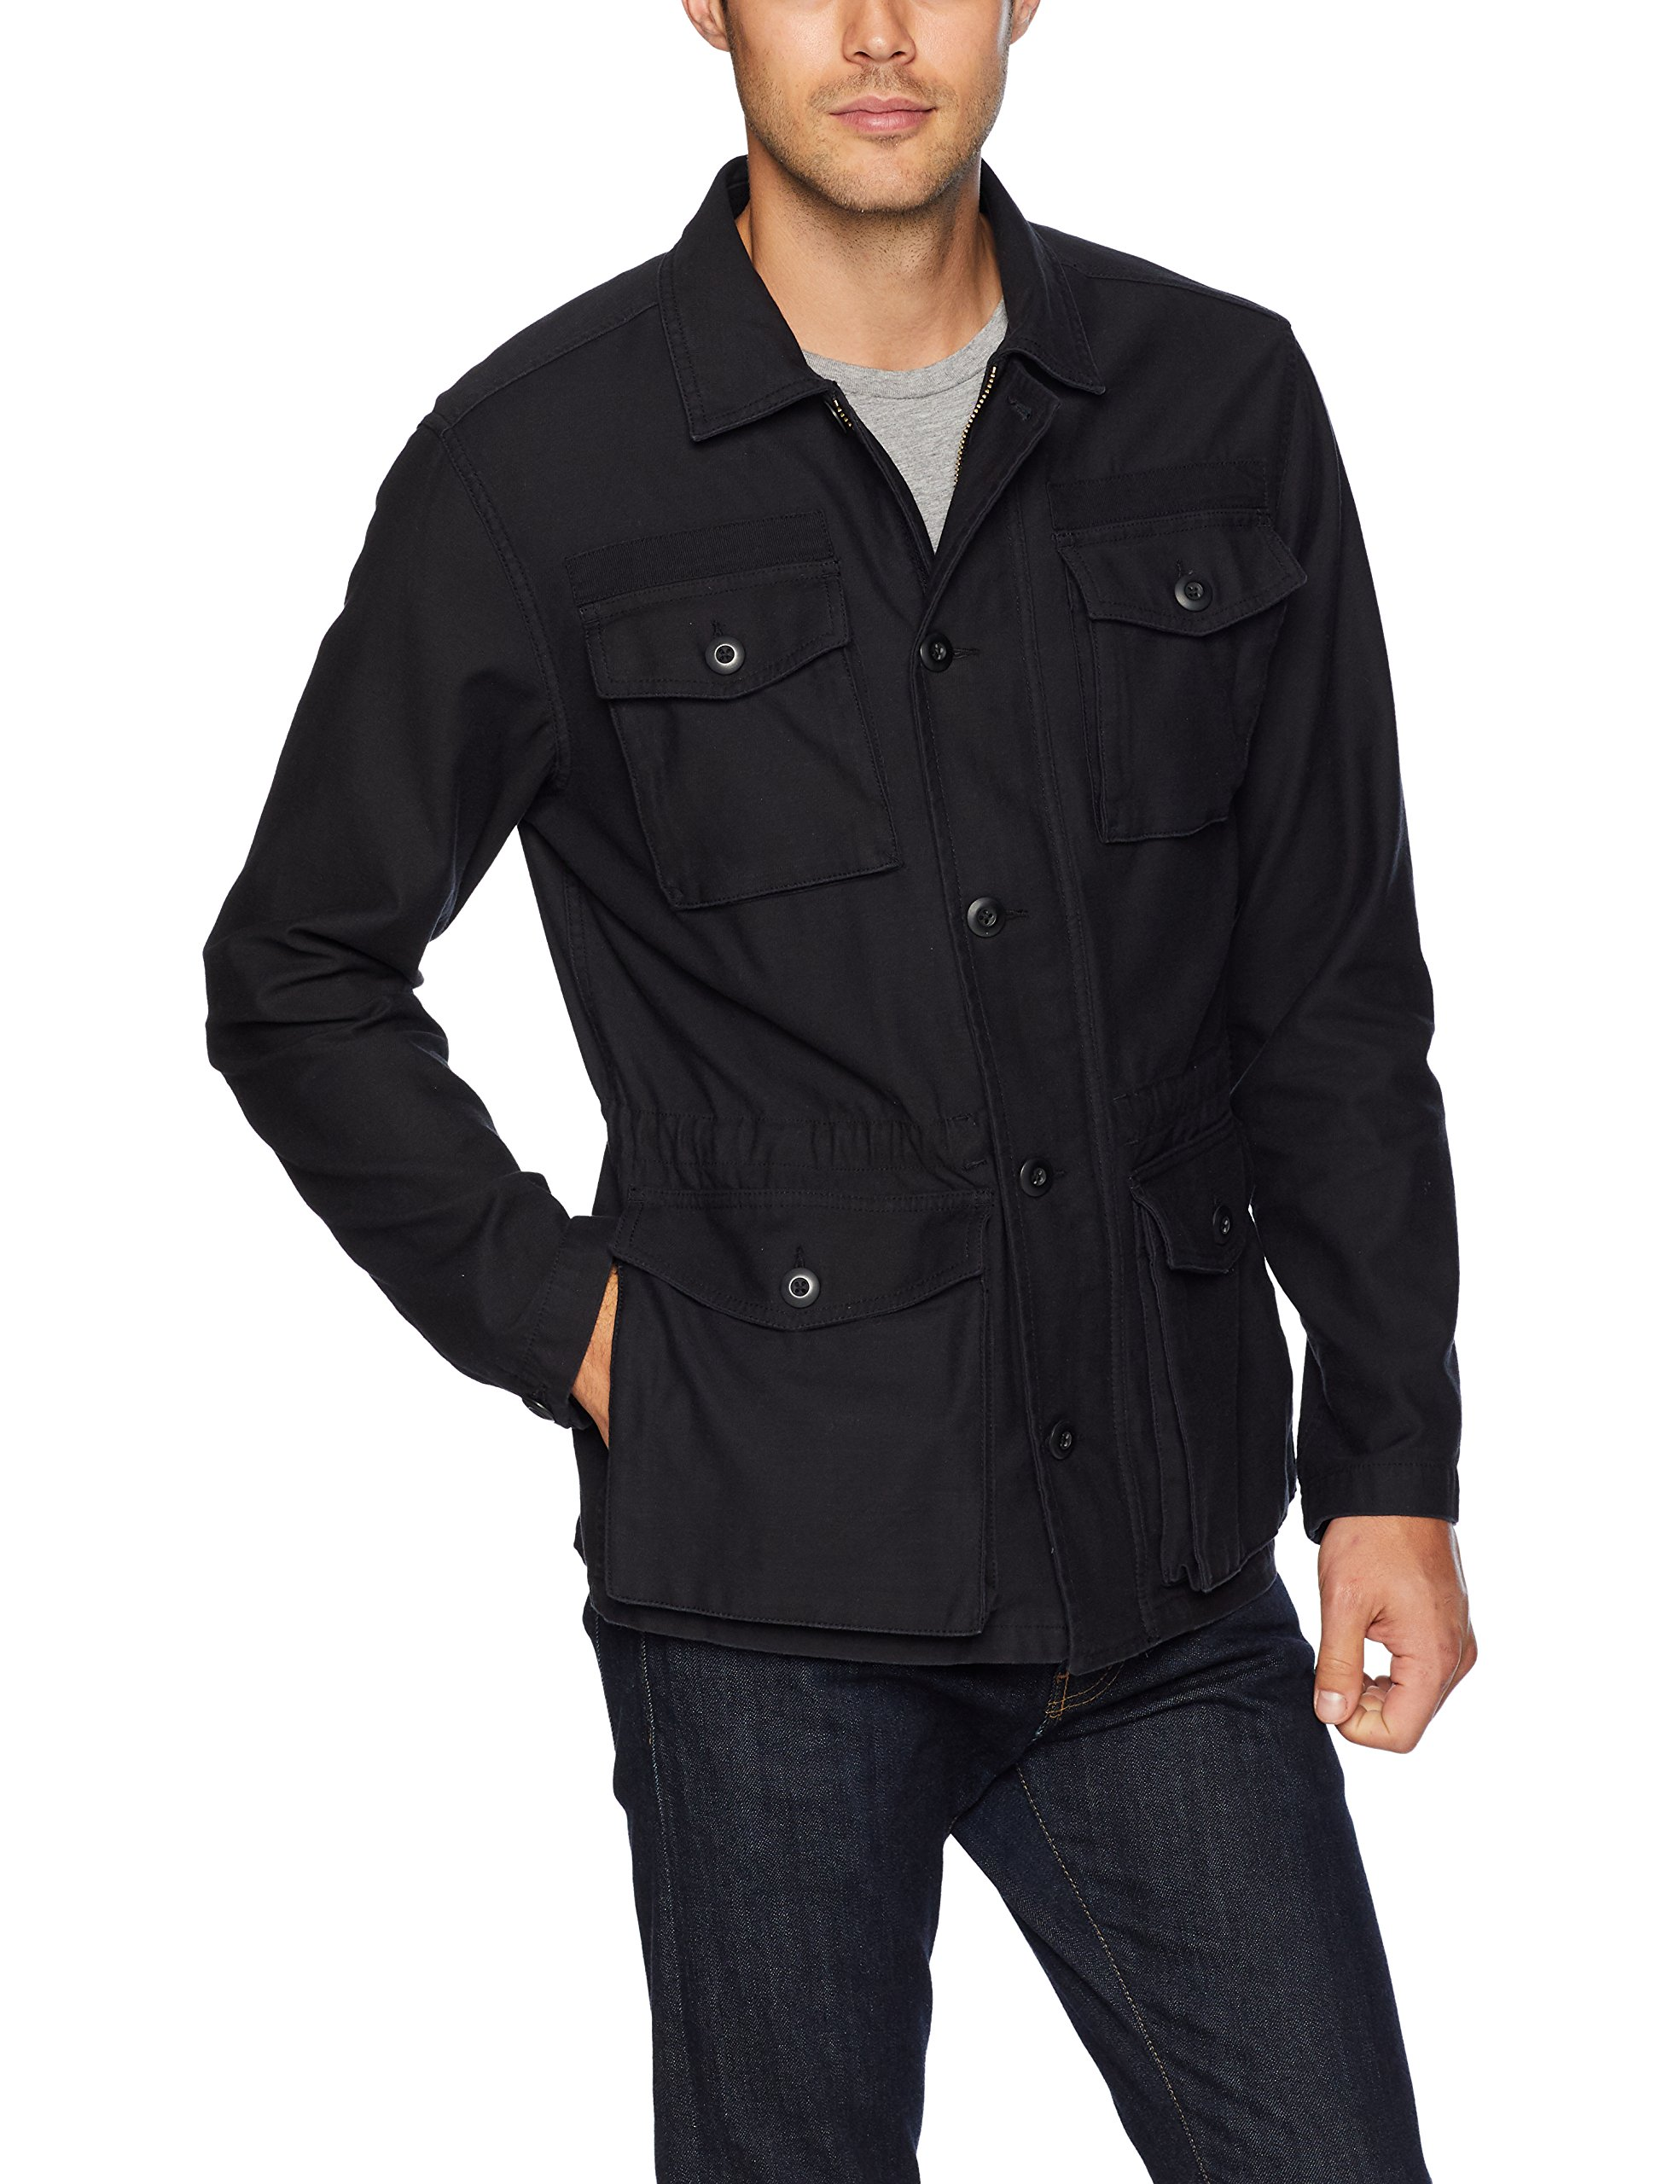 Goodthreads Men's 4-Pocket Military Jacket, Caviar/Black, Large